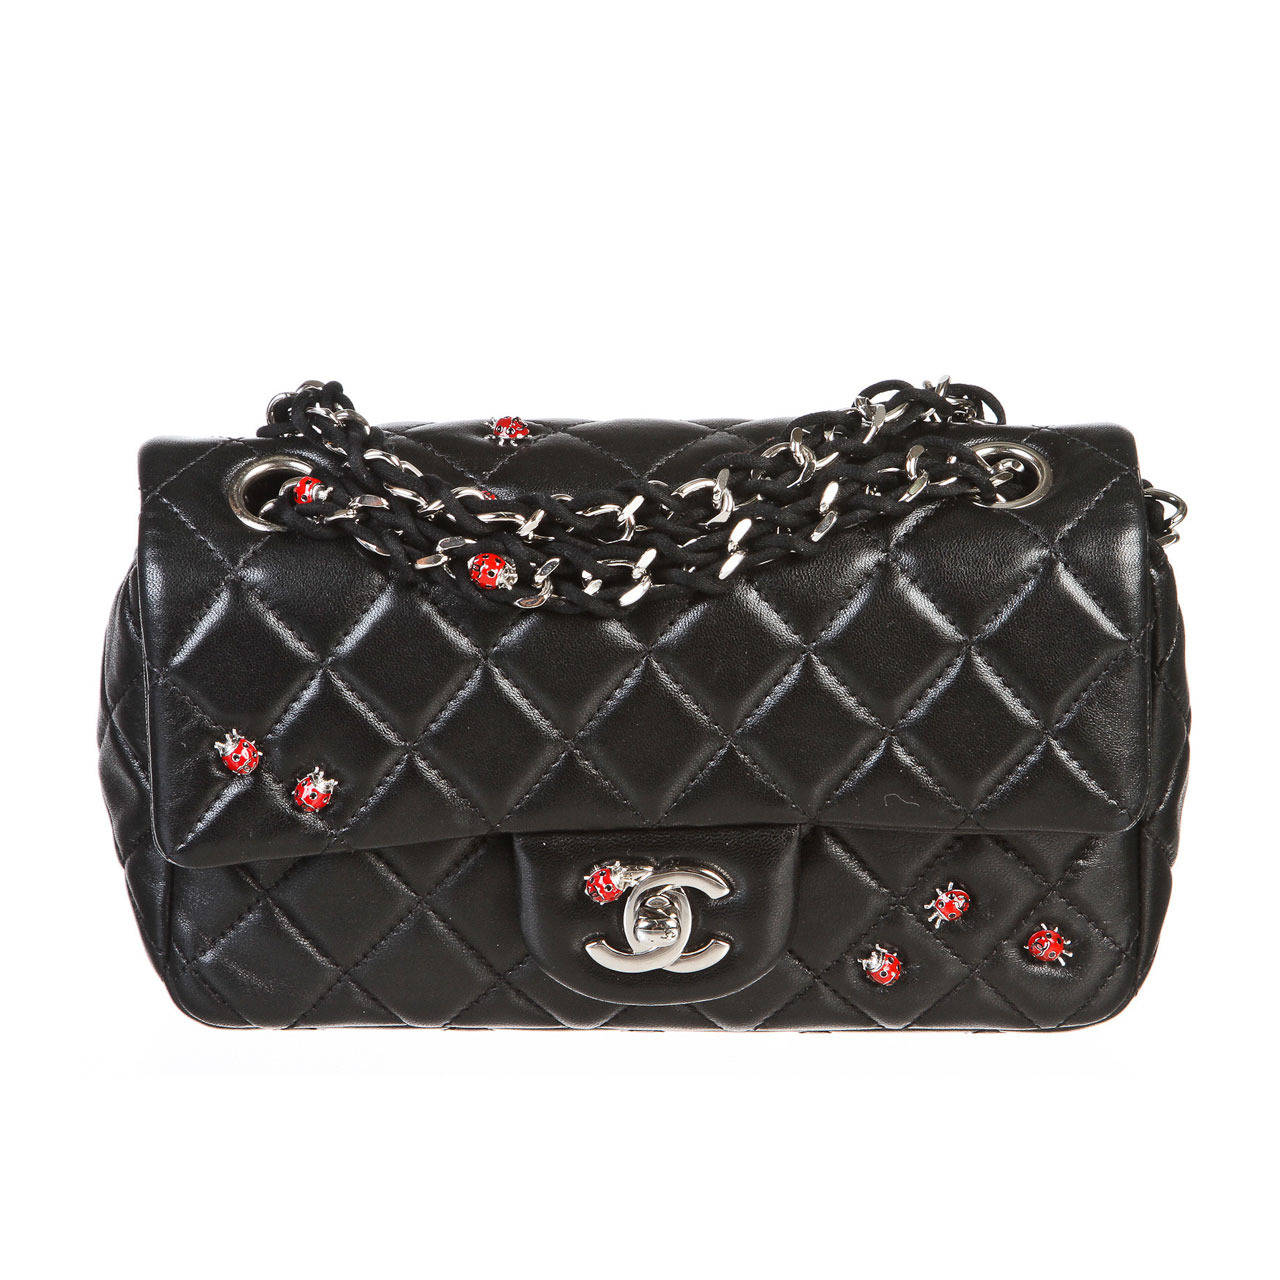 Chanel Black Quilted Lambskin Limited Edition Ladybug ...